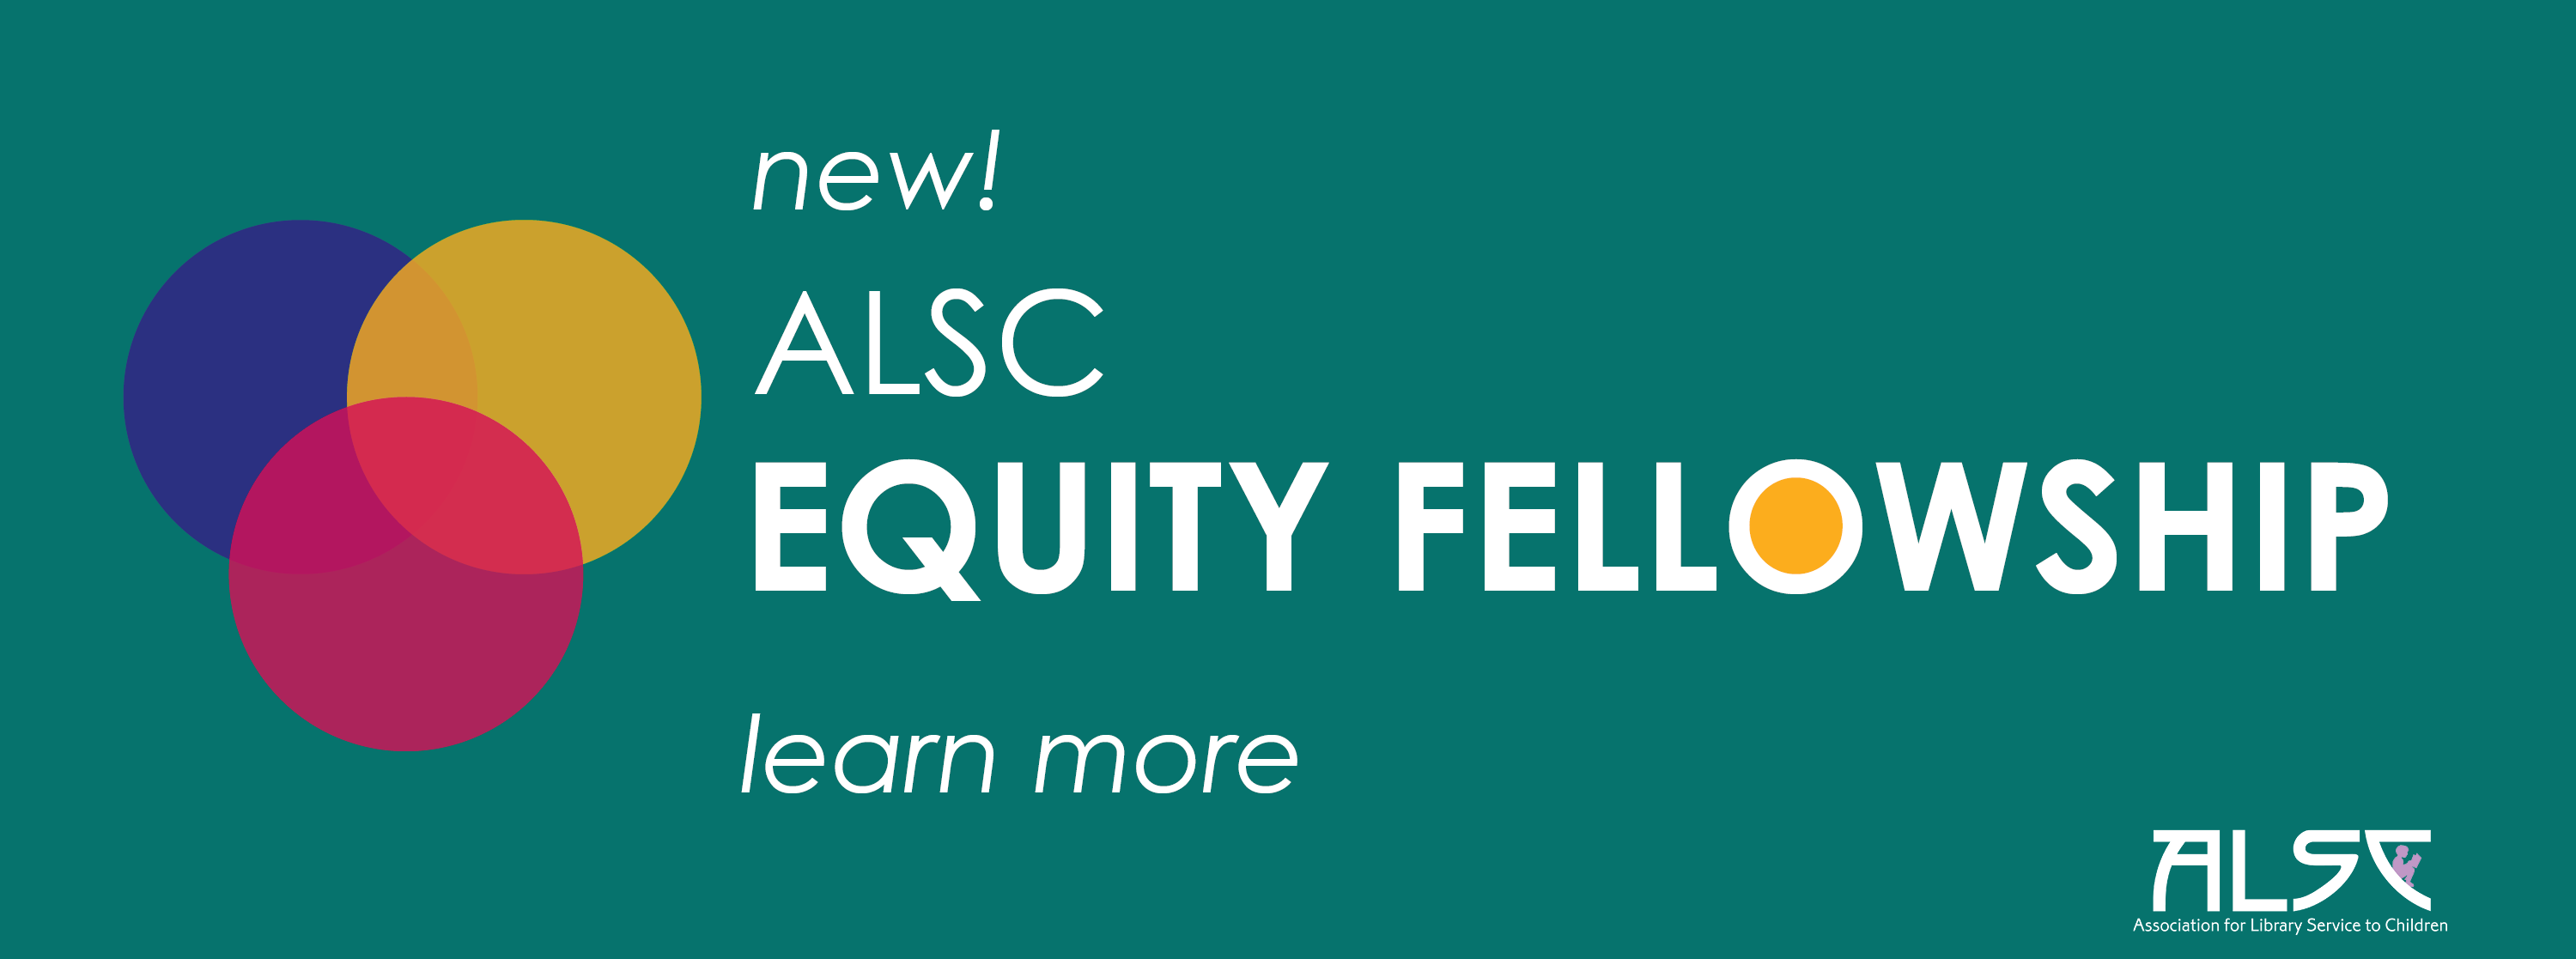 ALSC Equity Fellowship